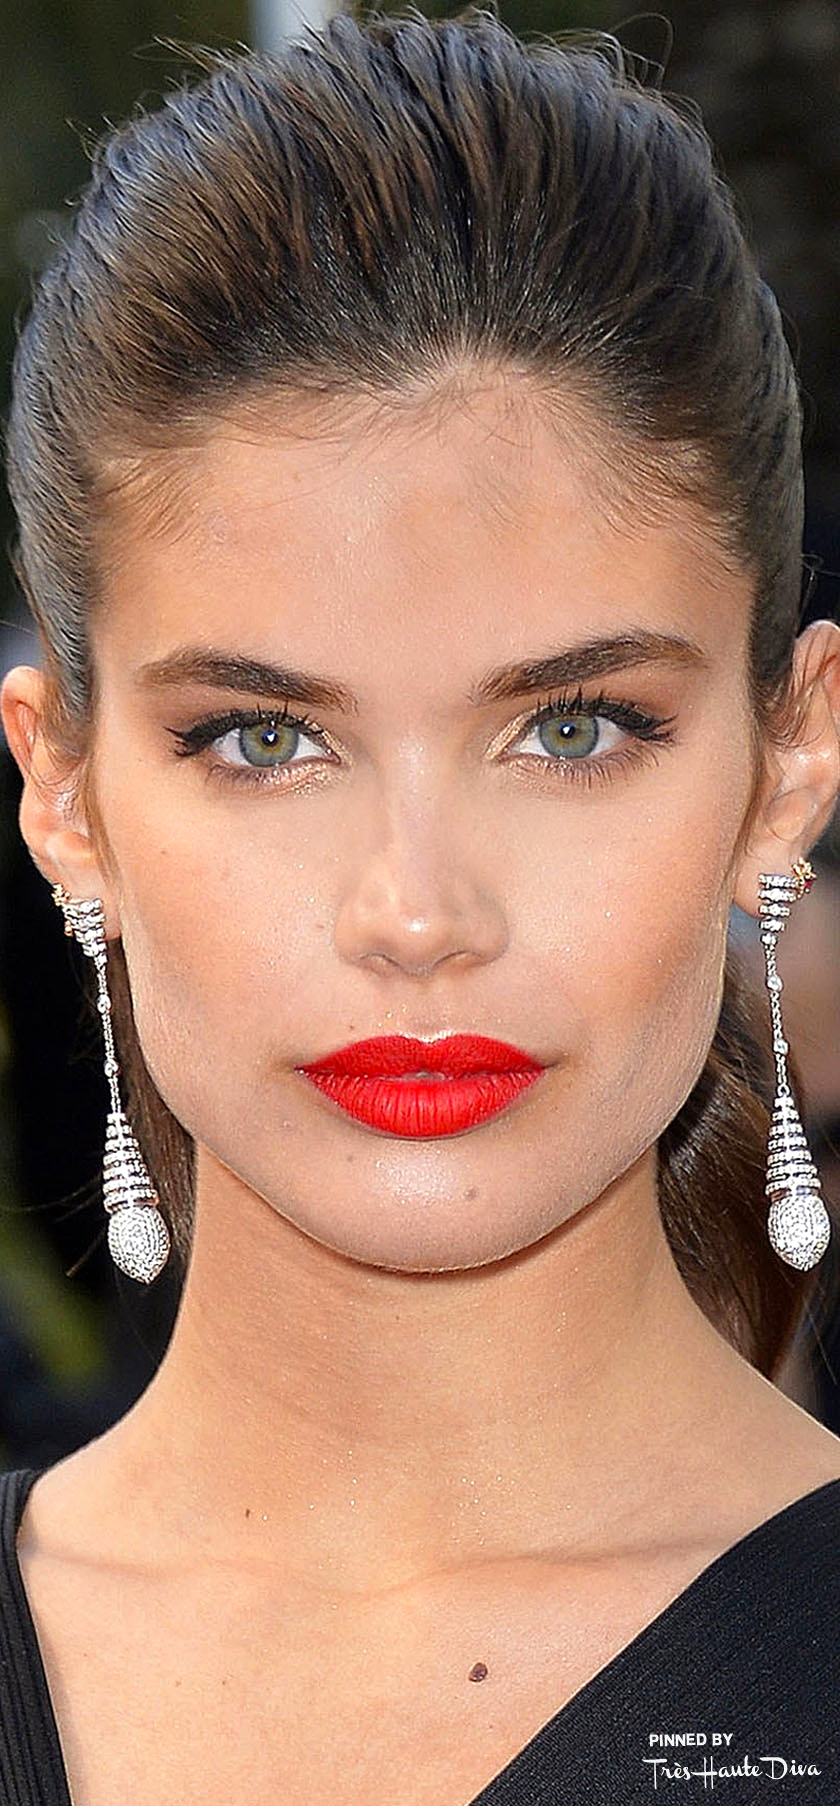 Sara Sampaio                   Photo by Rex Features